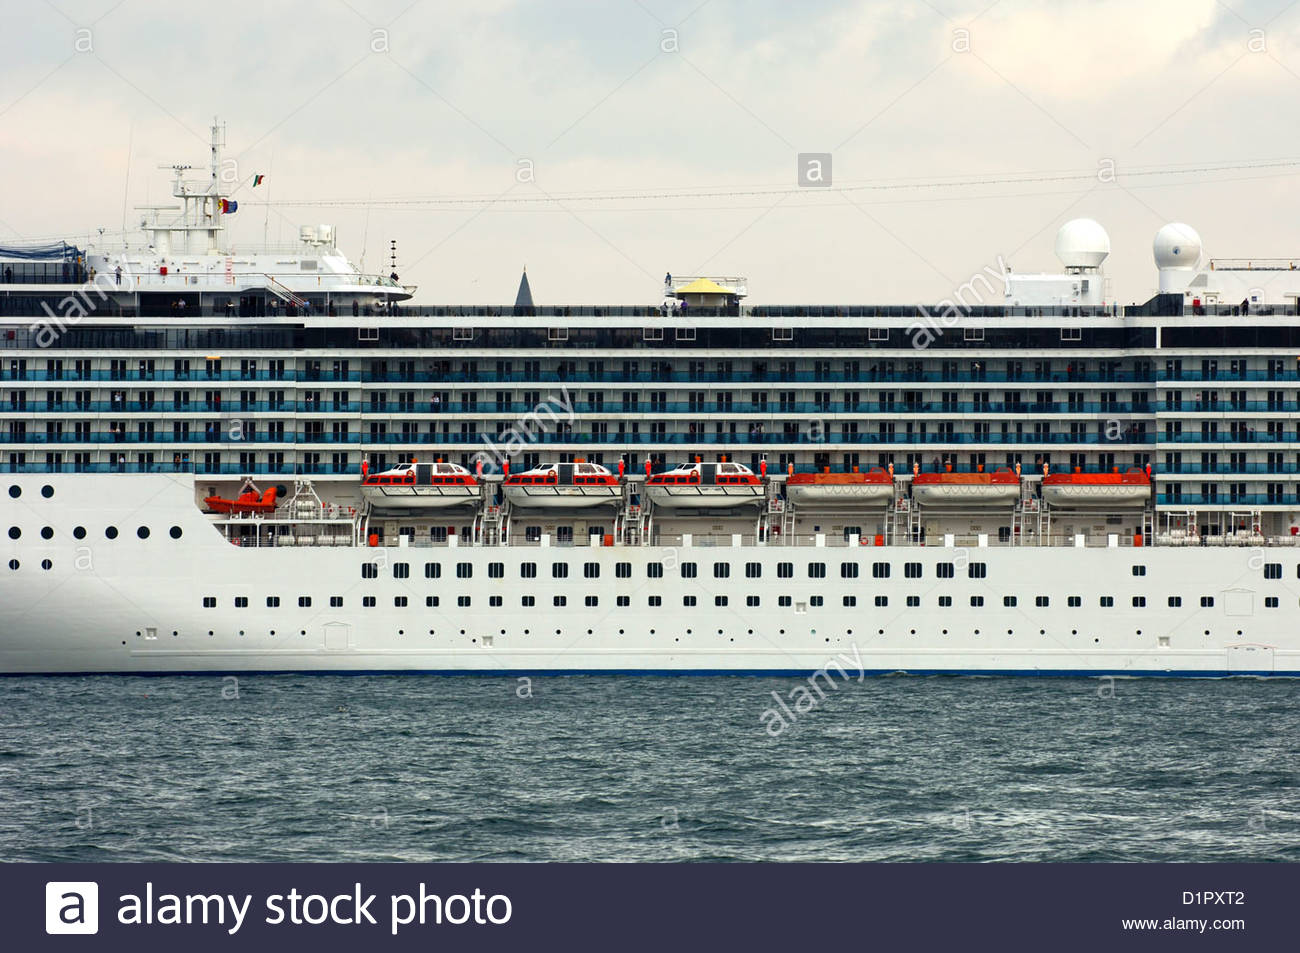 Port Side Of The Cruise Ship Costa Atlantica With Life Rafts Stock Photo Royalty Free Image ...